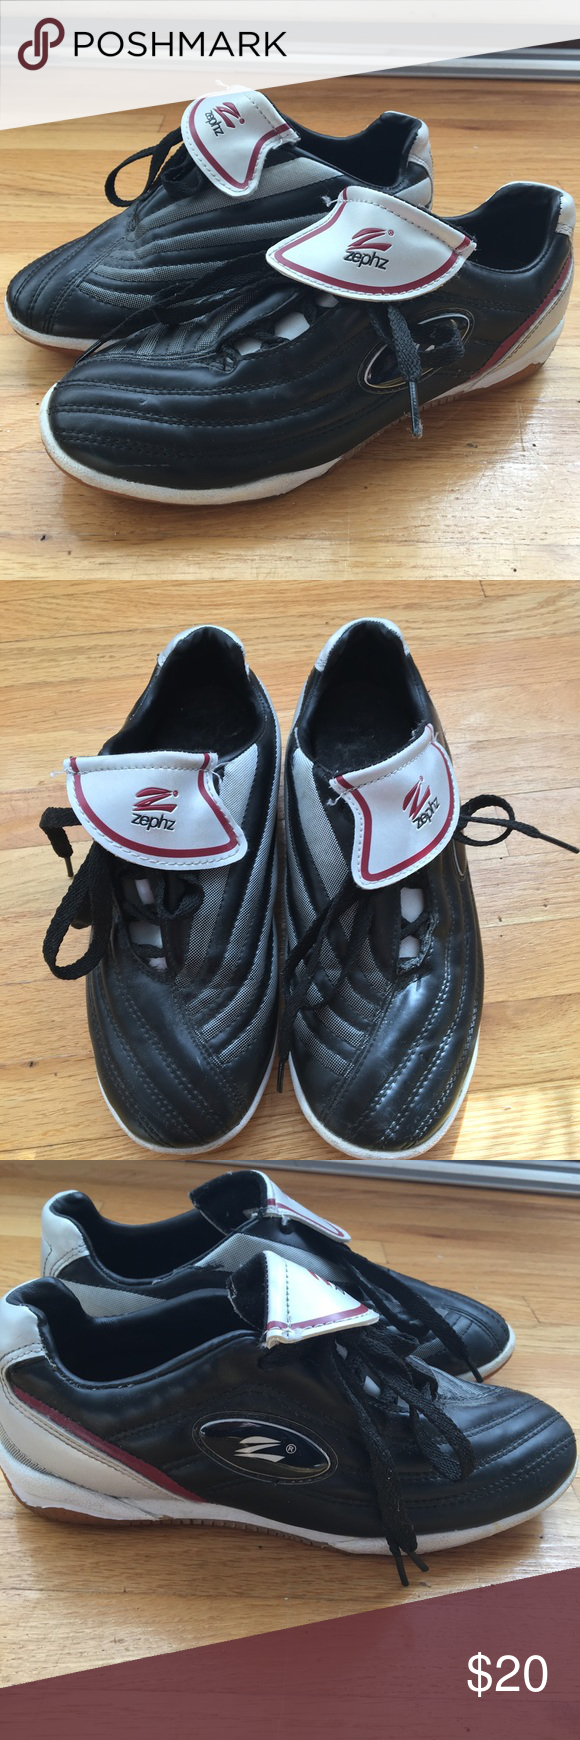 57eb3c9a6e3a Zephz Indoor Soccer Shoes Only worn 2-3 times but has some light signs of  use zephz Shoes Sneakers